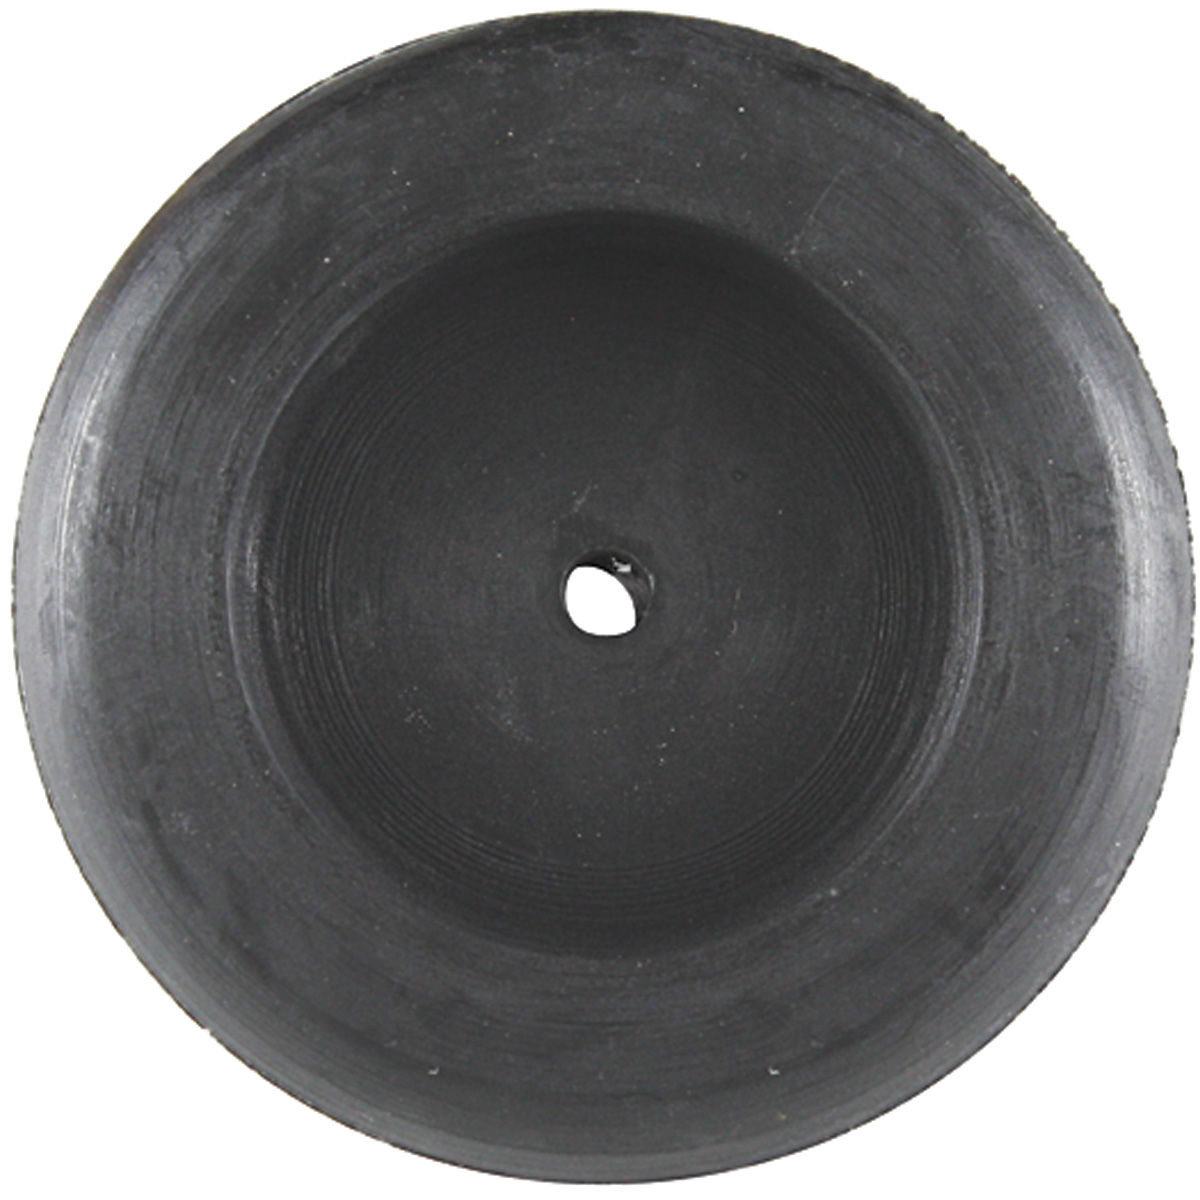 "Photo of Monte Carlo Firewall Grommet (Single Hole - 1-1/4"" Diameter)"